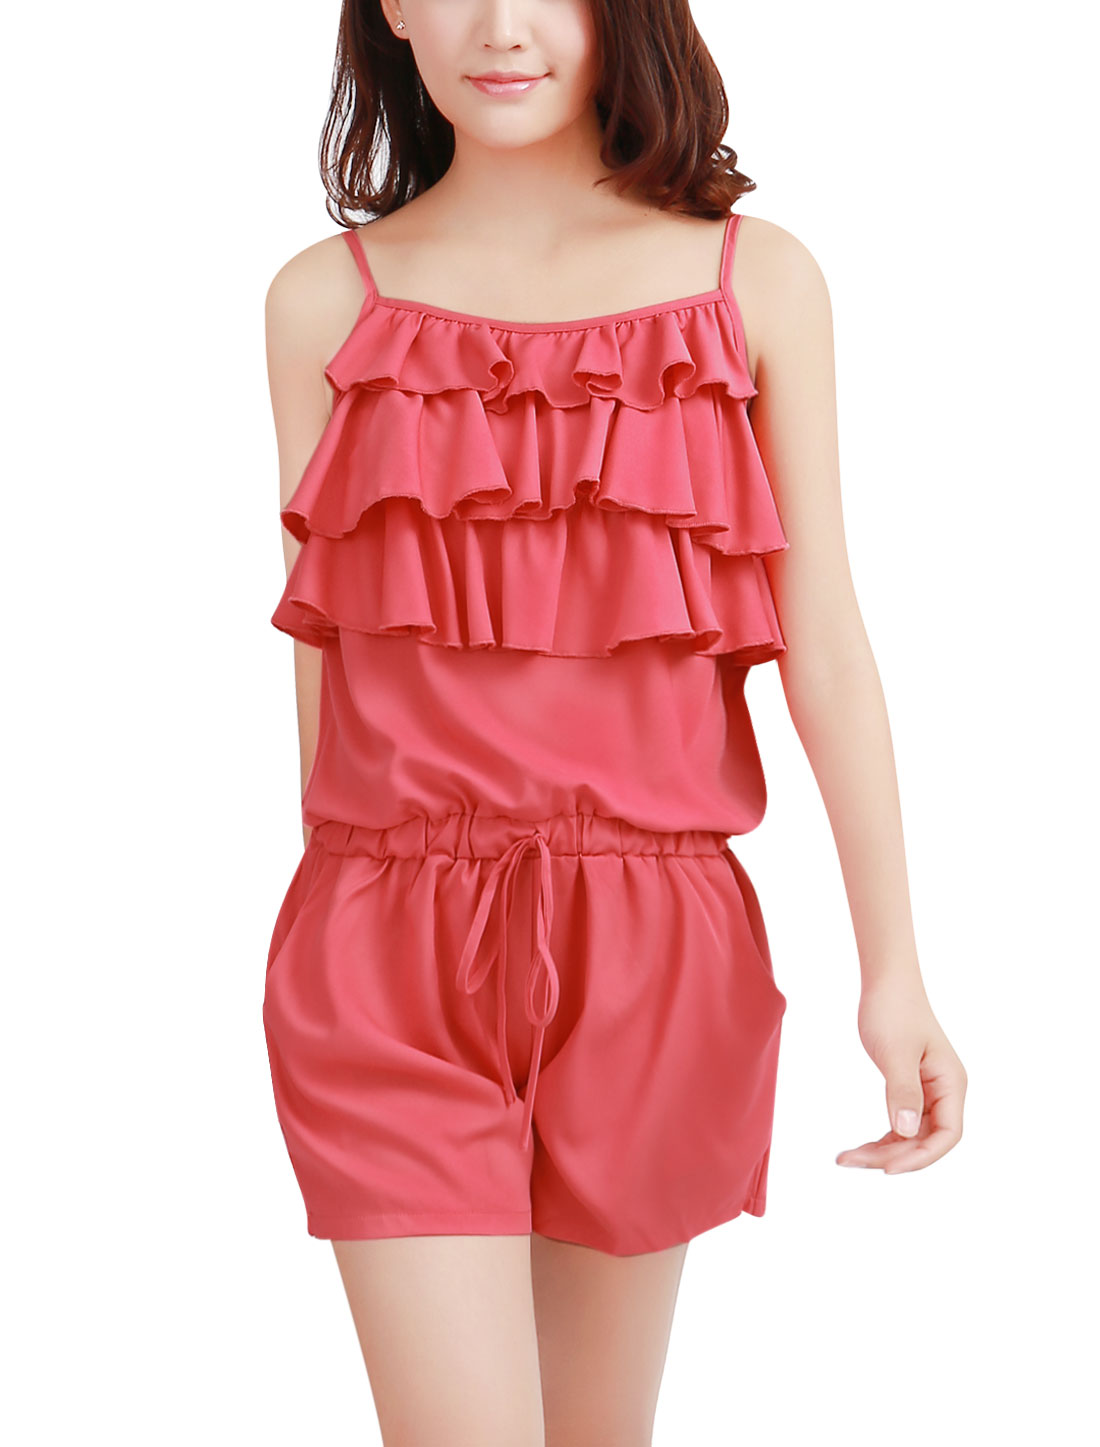 Women NEW Tiered Ruffled Front Pure Watermelon Red Rompers XS